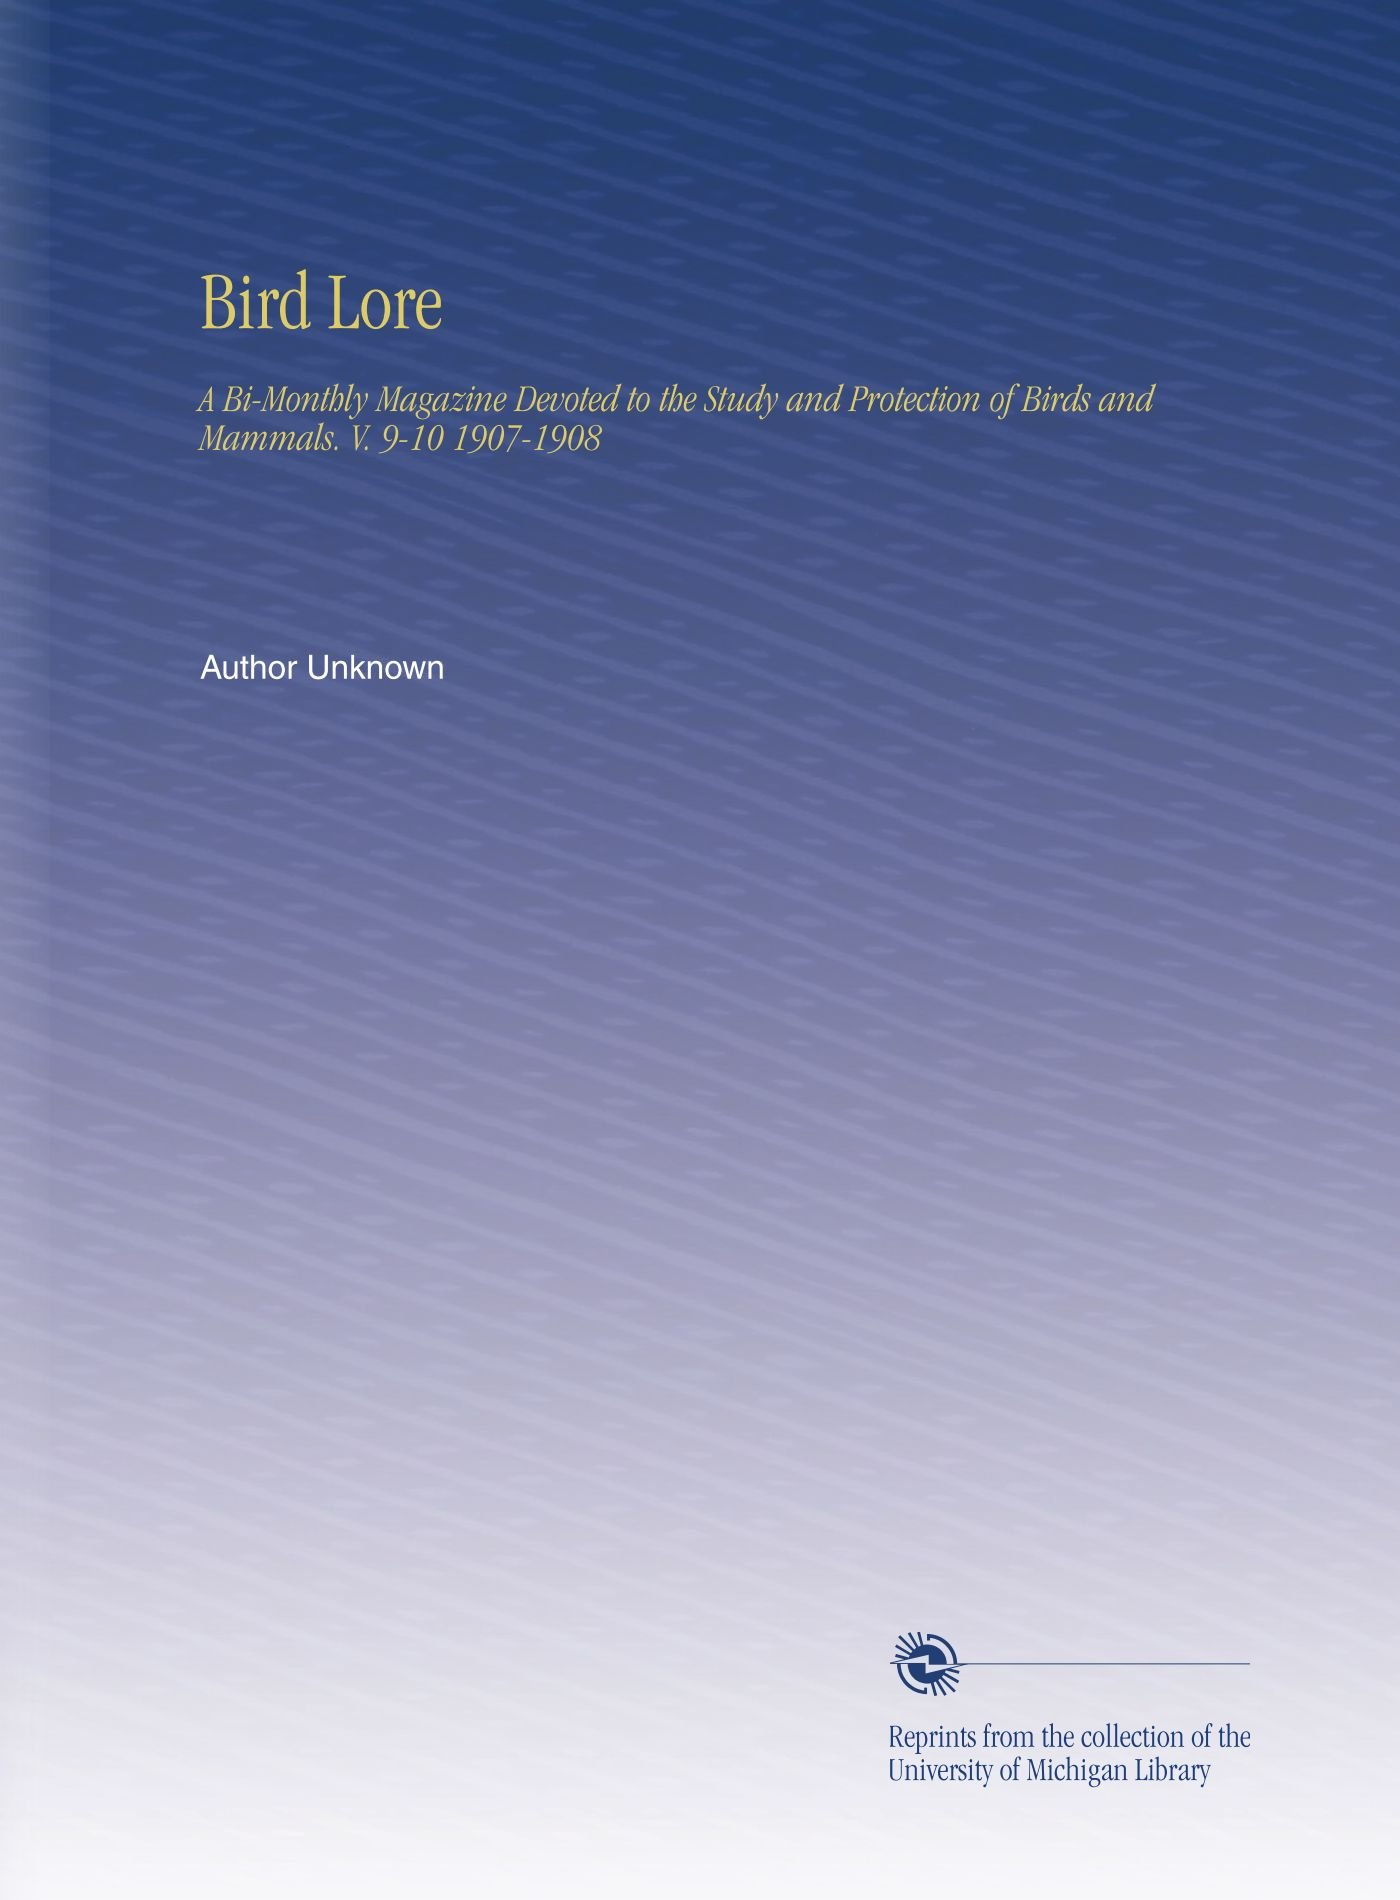 Download Bird Lore: A Bi-Monthly Magazine Devoted to the Study and Protection of Birds and Mammals. V.  9-10 1907-1908 ebook